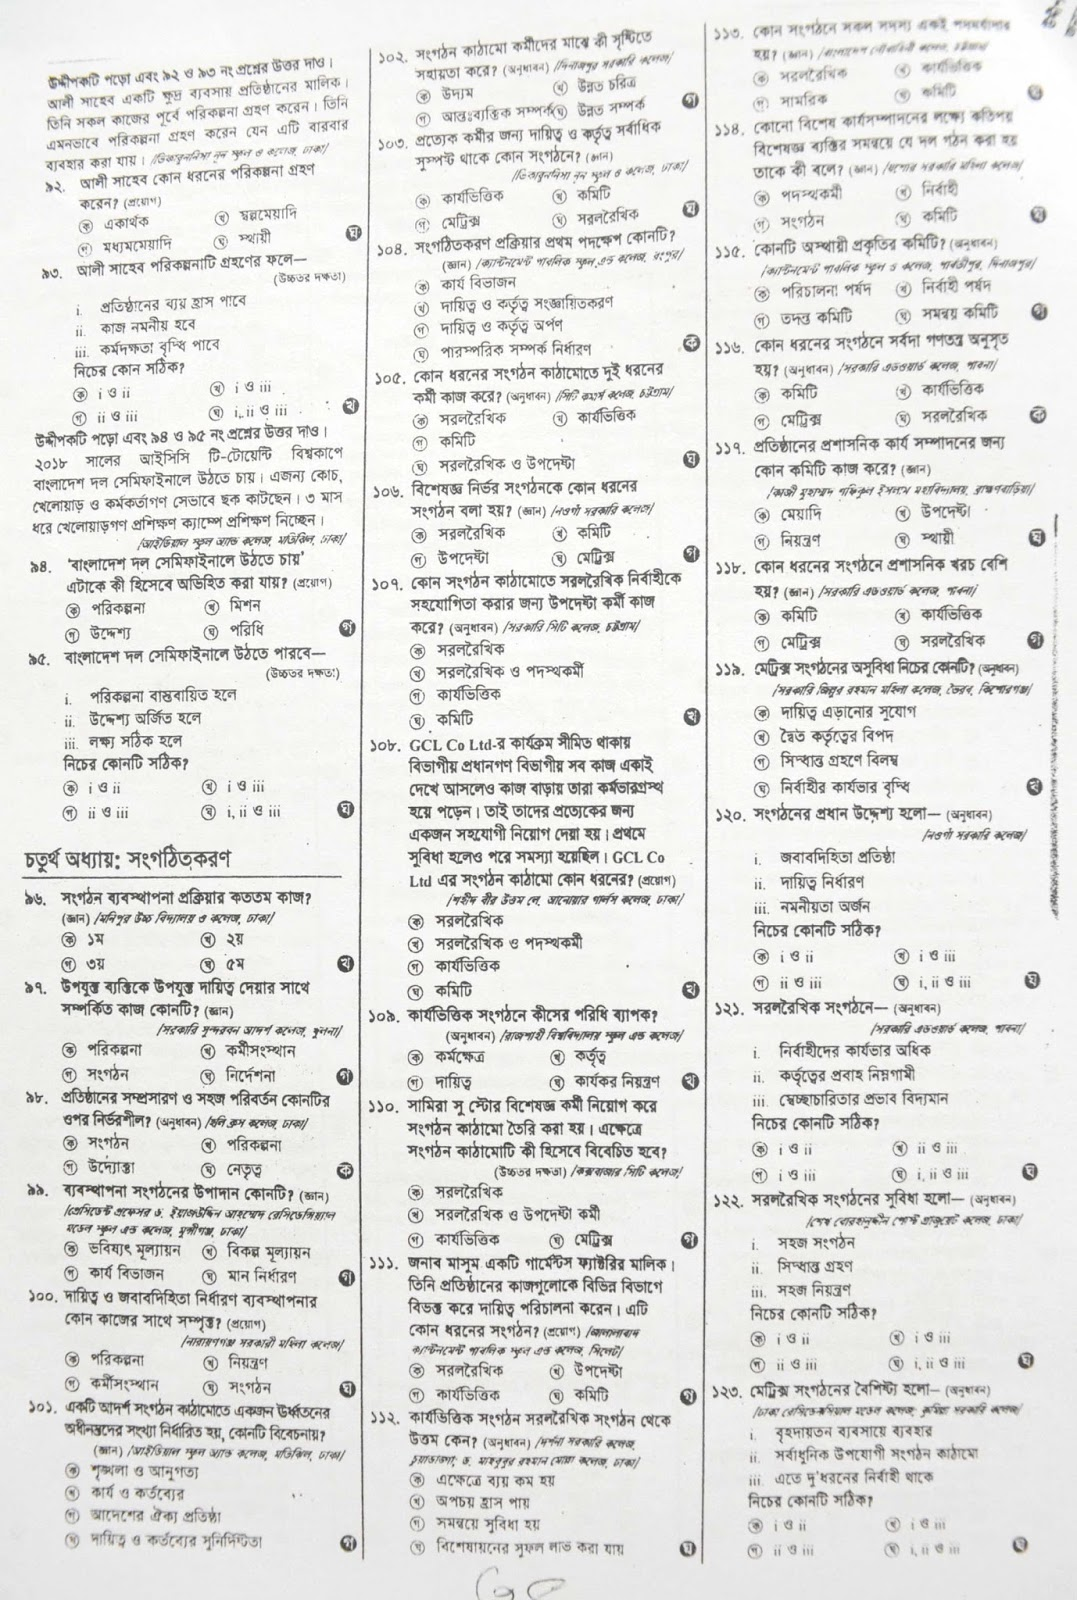 hsc HSC Business Organization & Management 2nd Paper suggestion, exam question paper, model question, mcq question, question pattern, preparation for dhaka board, all boards